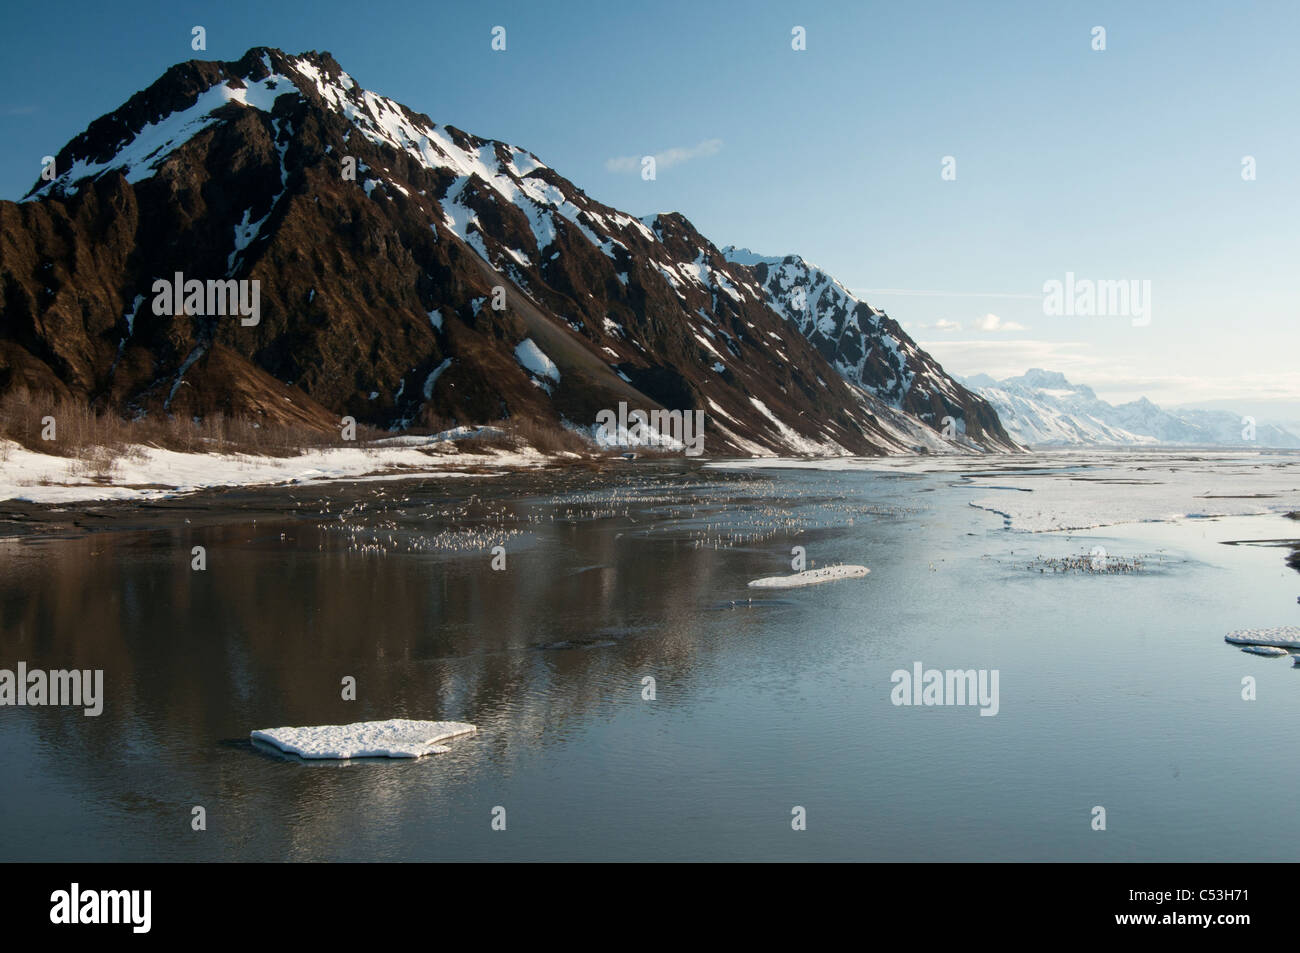 Spring ice and thousands of gulls gather on the Copper River near Flag Point, Chugach National Forest, Alaska, Spring - Stock Image